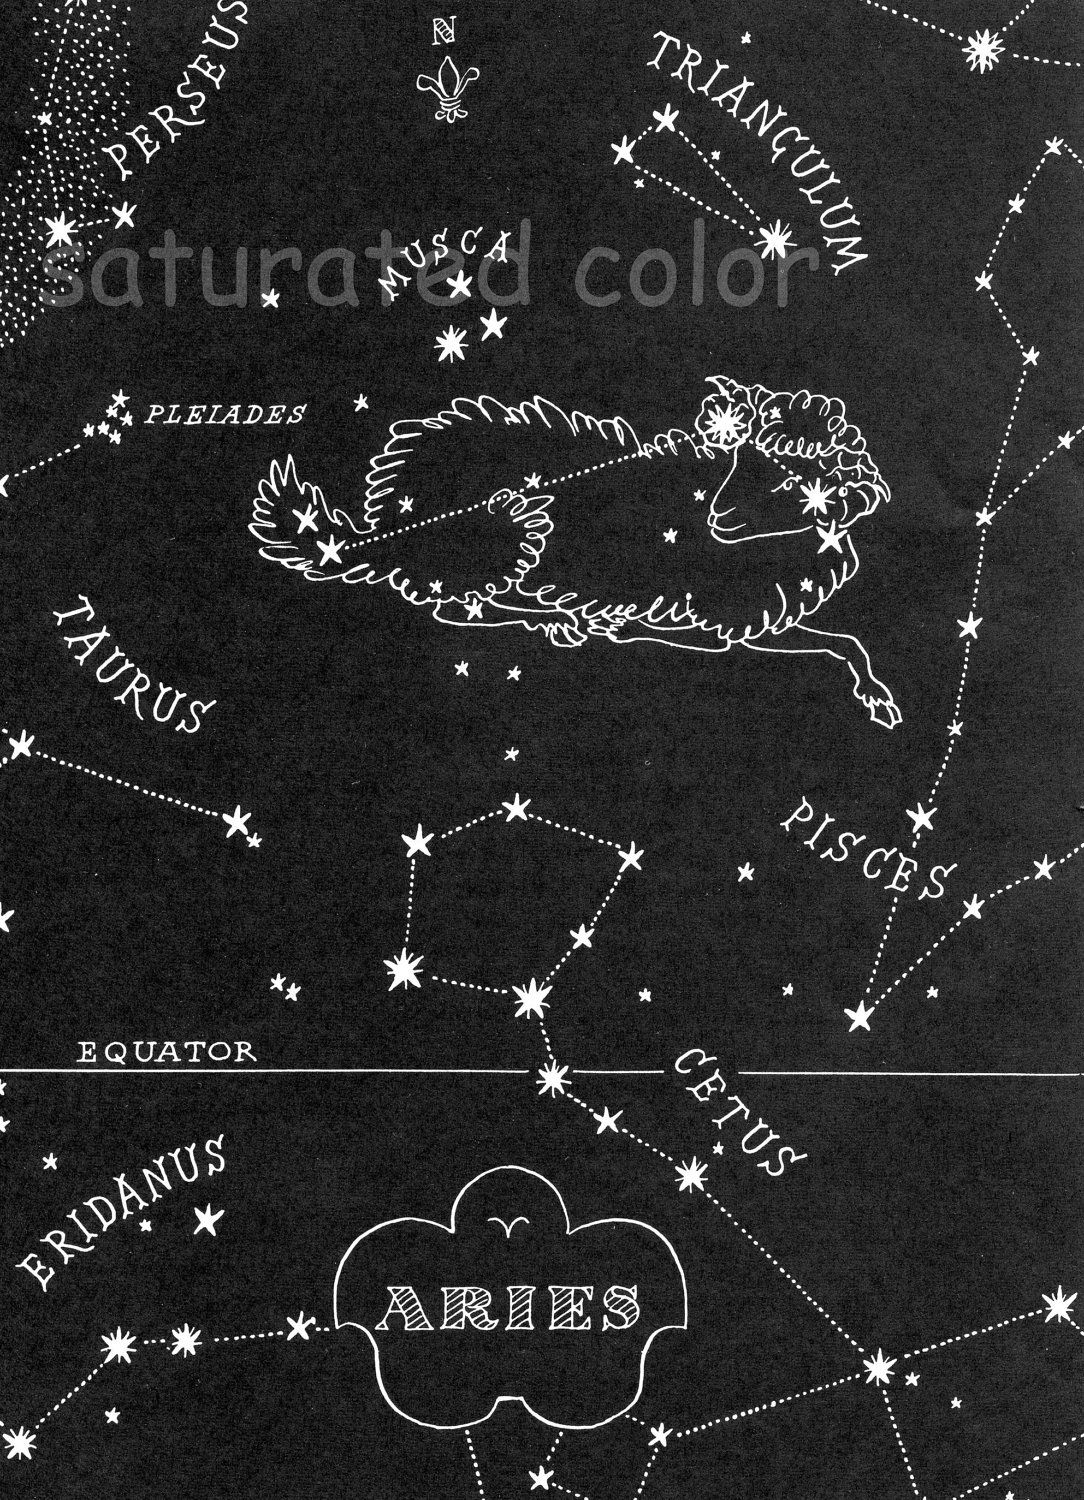 Aries Night Sky Star Chart Map Zodiac Constellation Stars From 1948 Astronomy Textbook 11 99